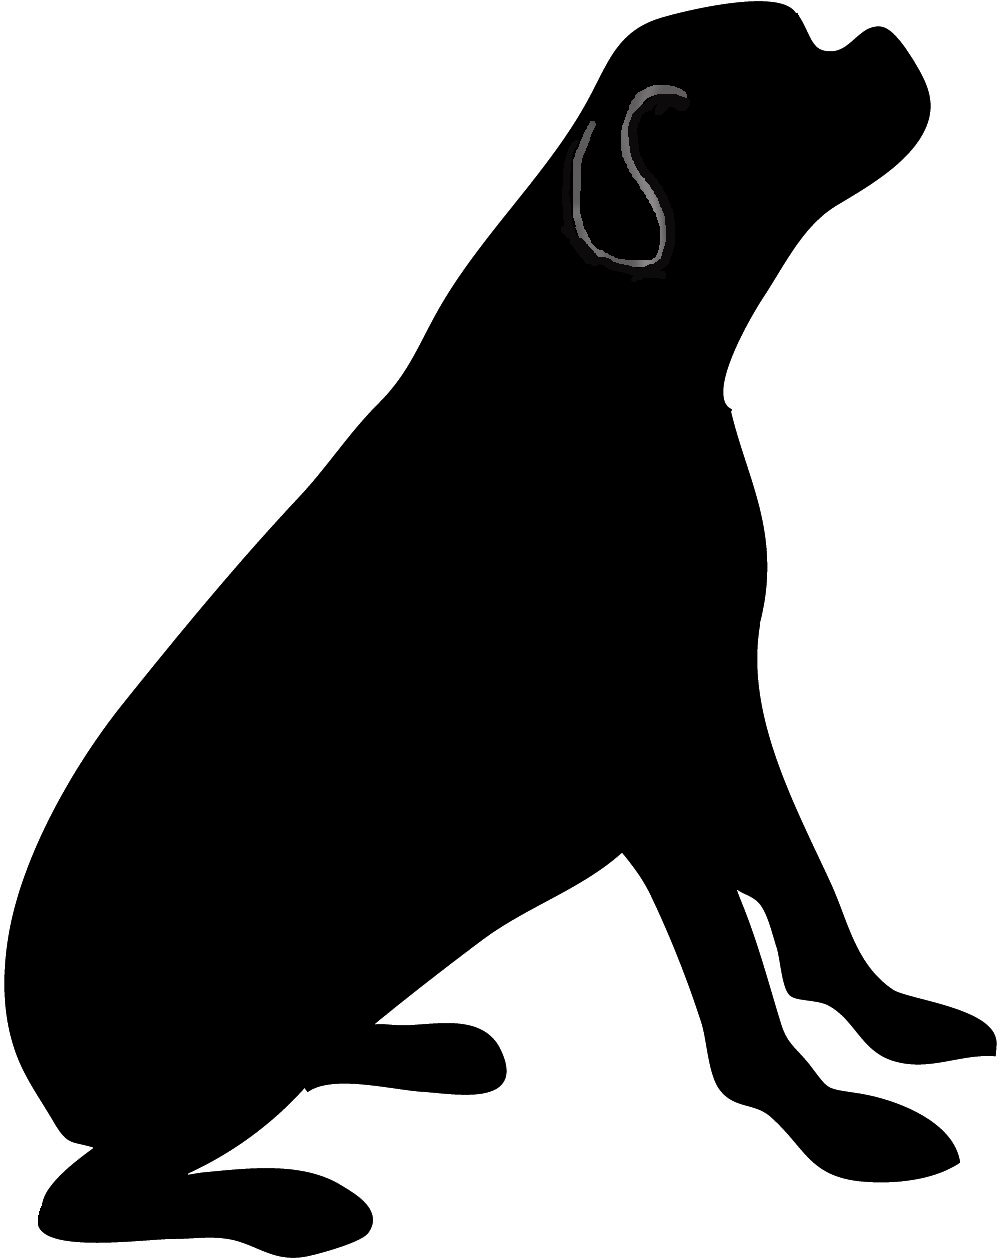 Dog silhouette clip art black and white graphic royalty free library Dog silhouette clip art black and white - ClipartFest graphic royalty free library